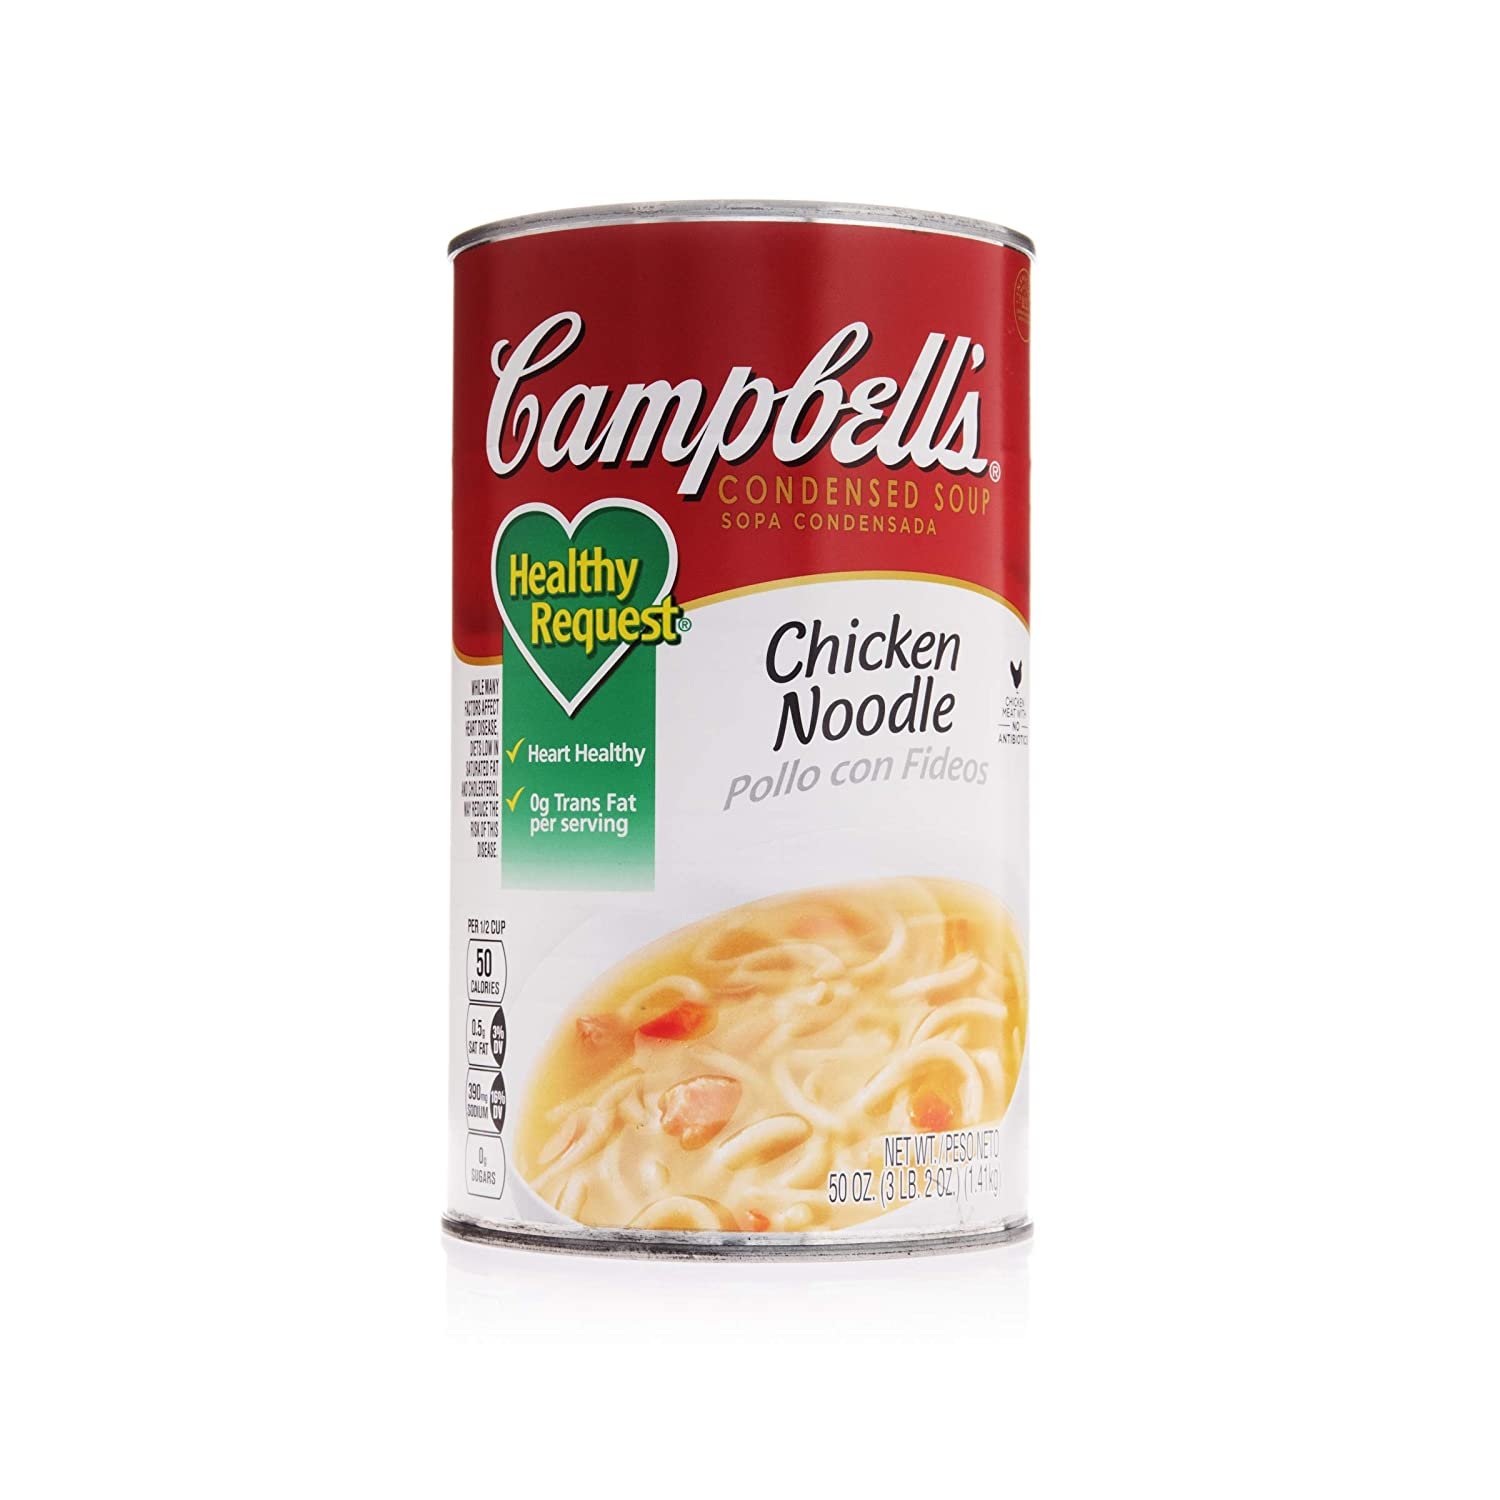 Campbell's Foodservice Classic Condensed Healthy Request Soup Cans 12 Pack, Chicken Noodle, 50 Ounce